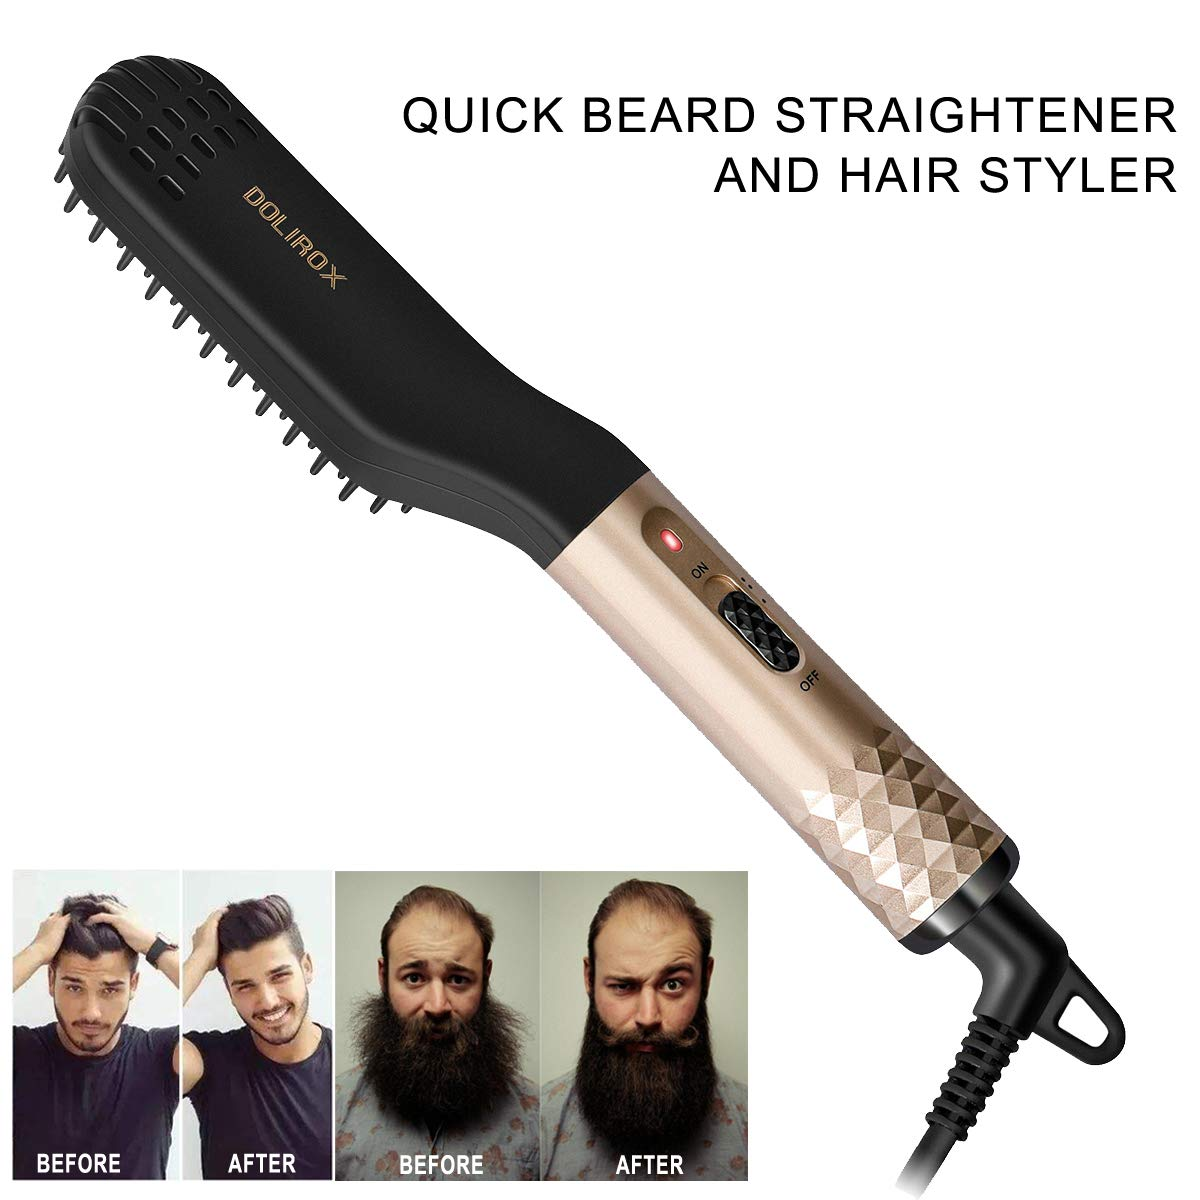 Wow! Just the item I needed!! Beard looks amazing!